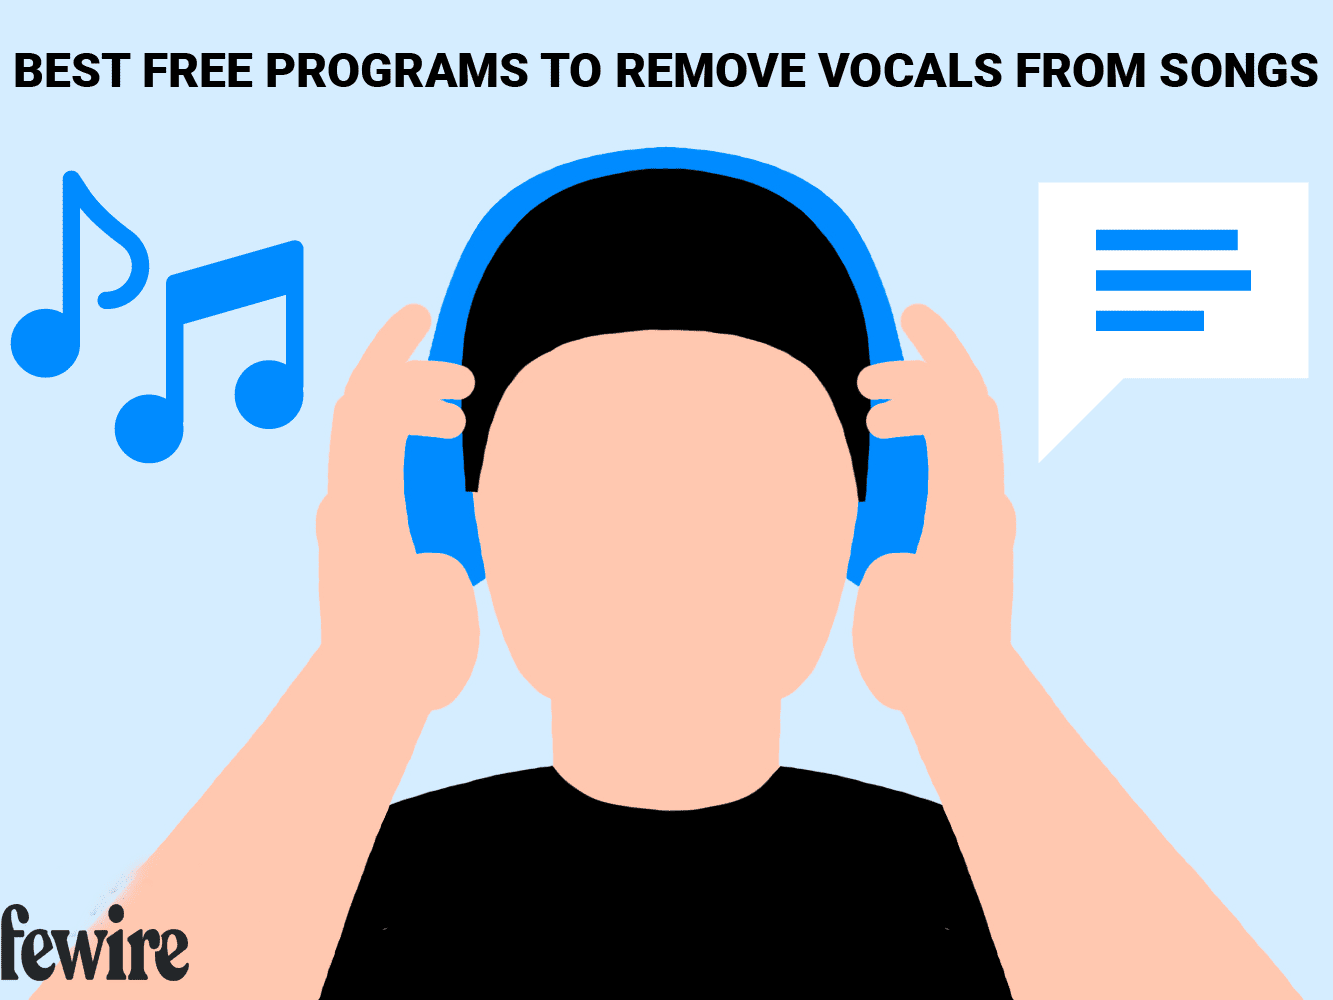 free music tracks download without vocals